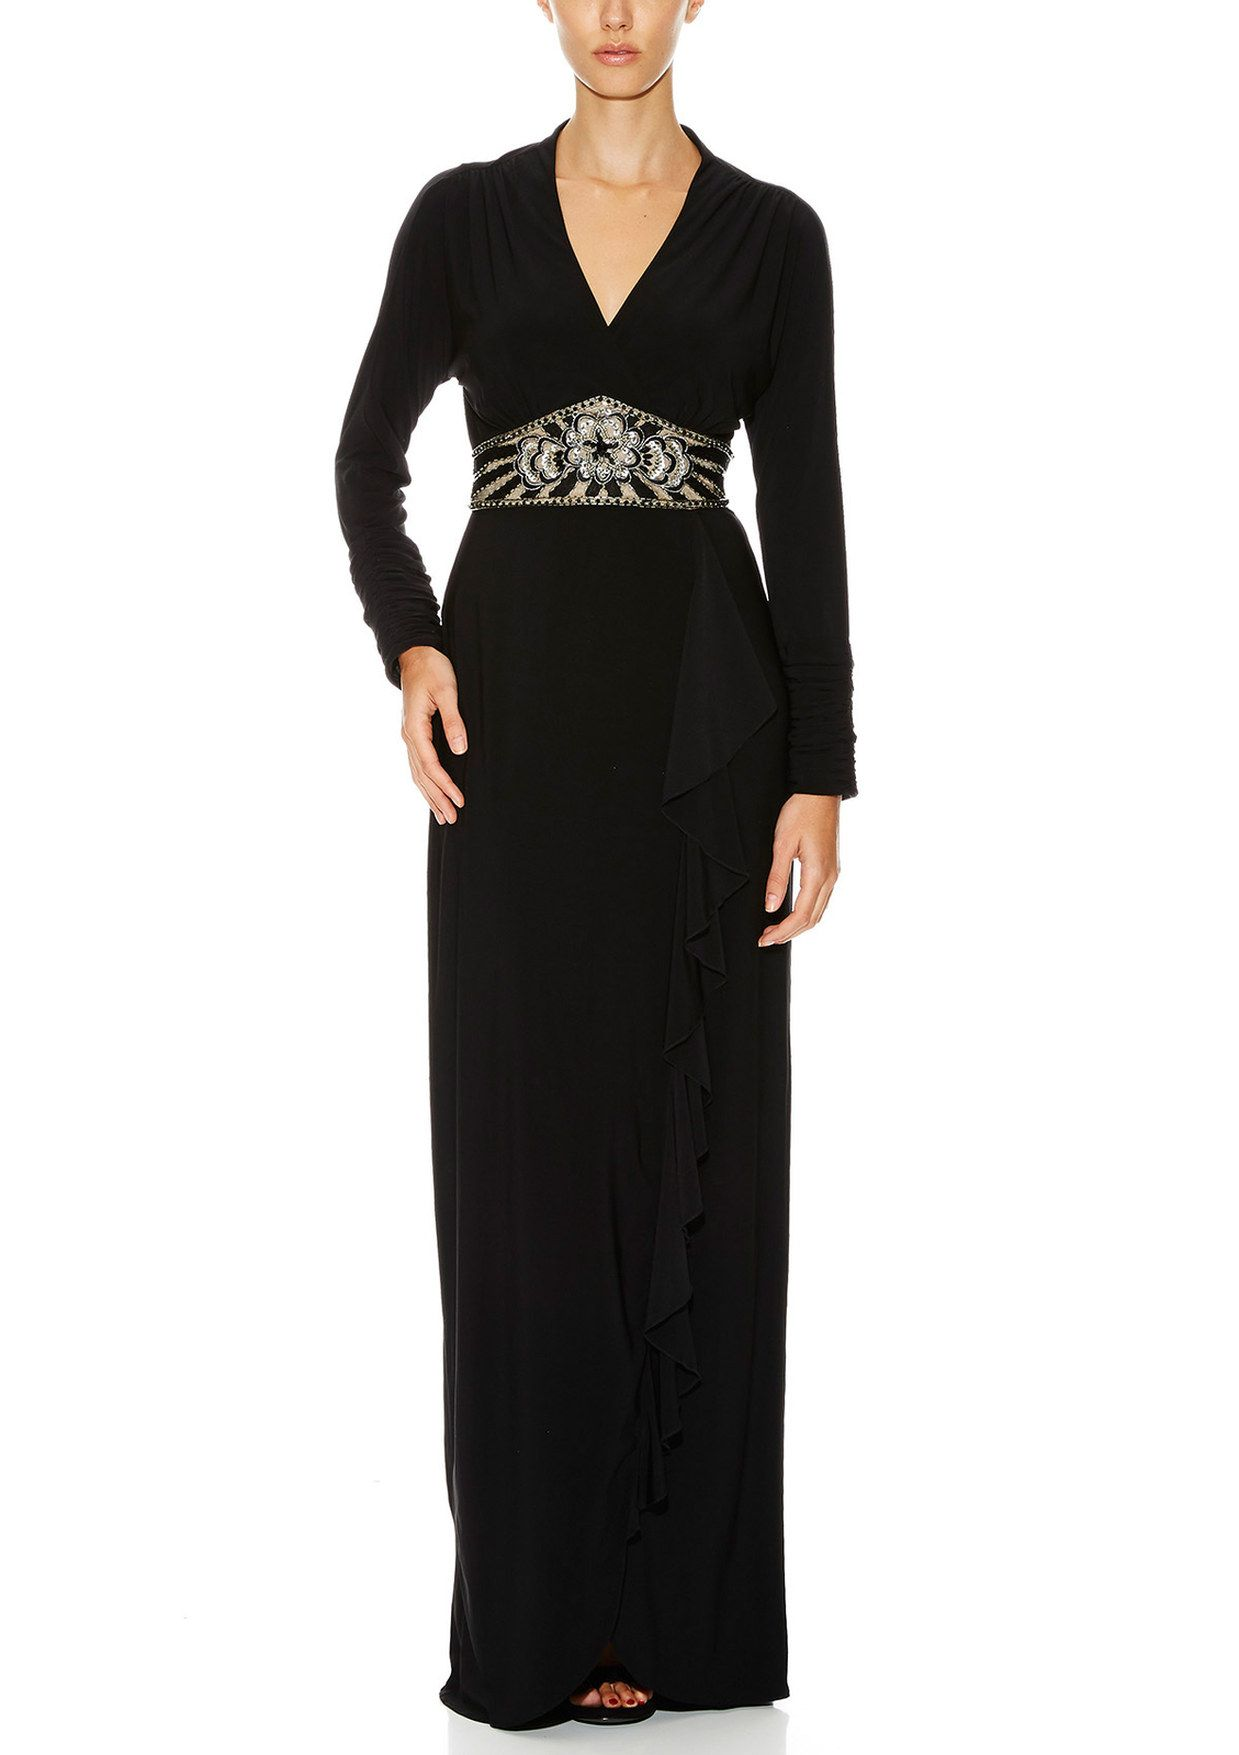 Sue wong long sleeve vneck gown ideel style pinterest